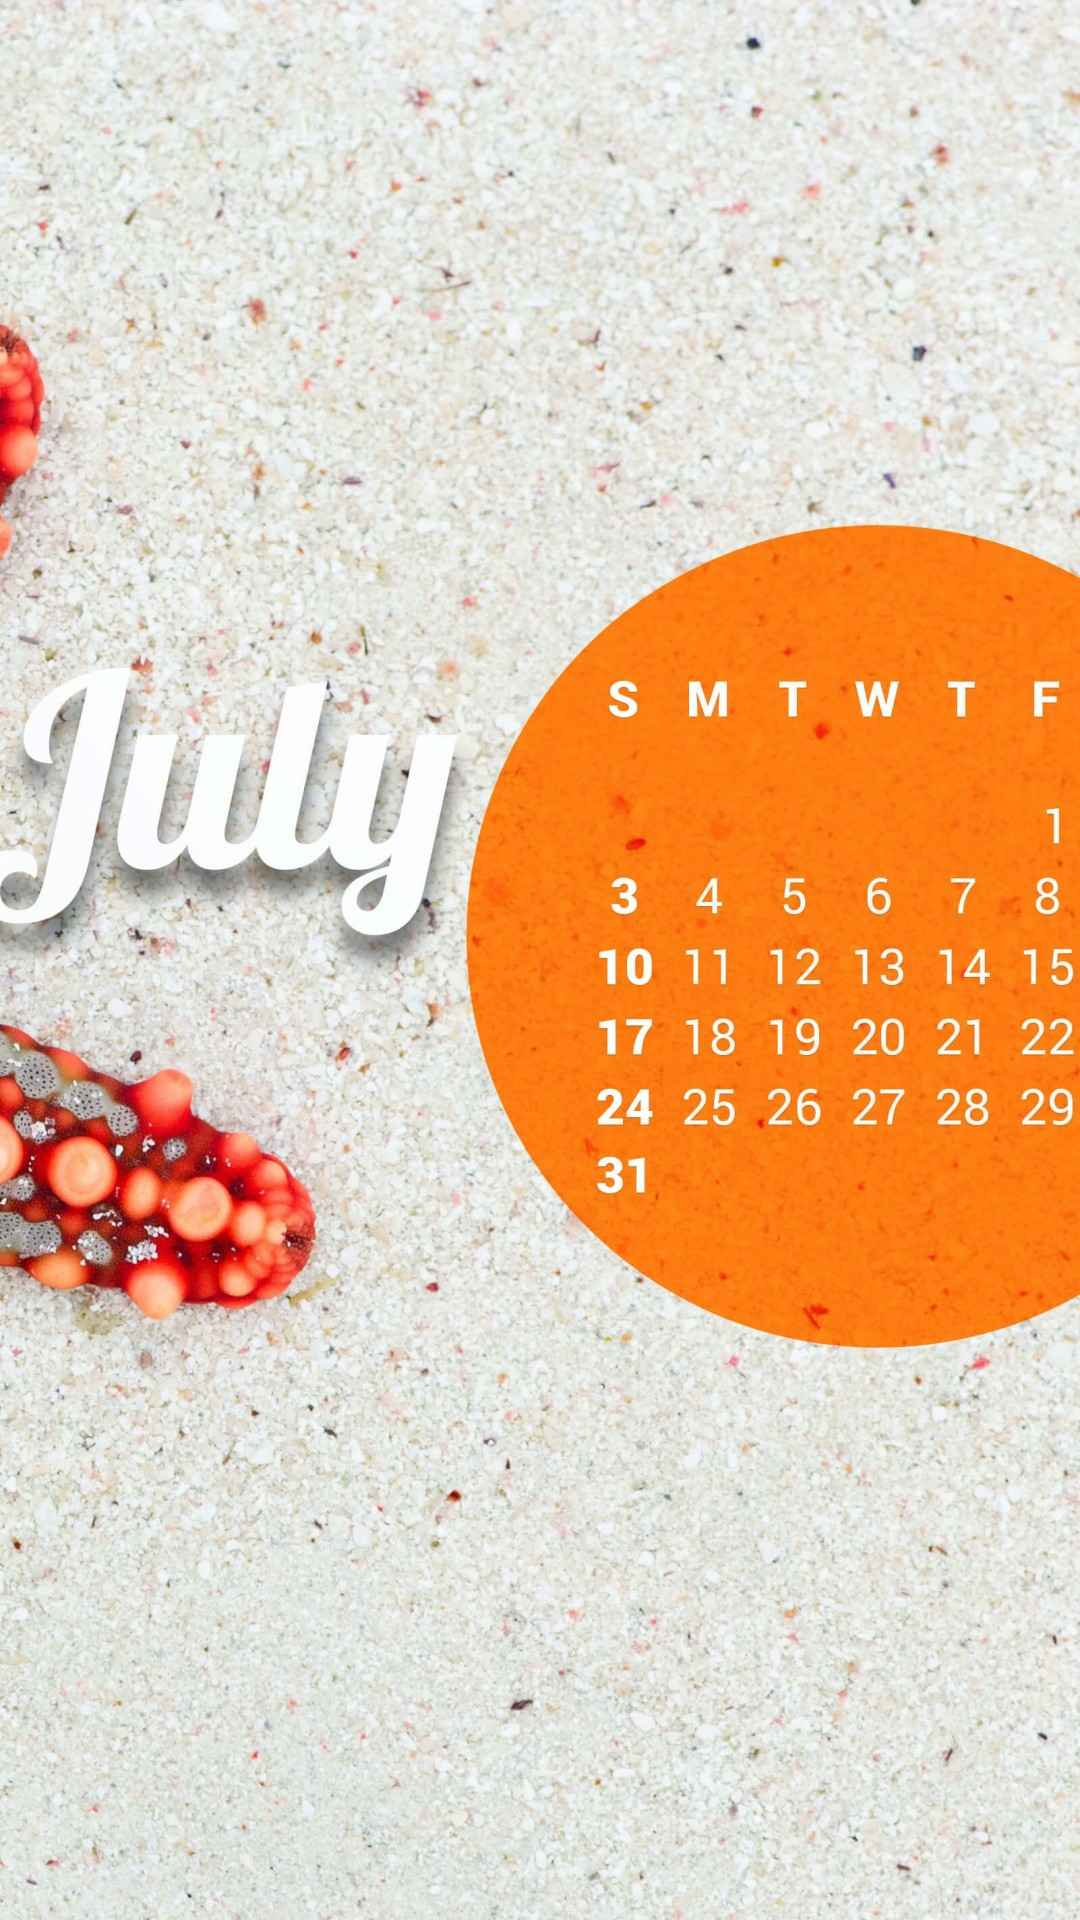 July 2016 Calendar Wallpaper for SAMSUNG Galaxy S4